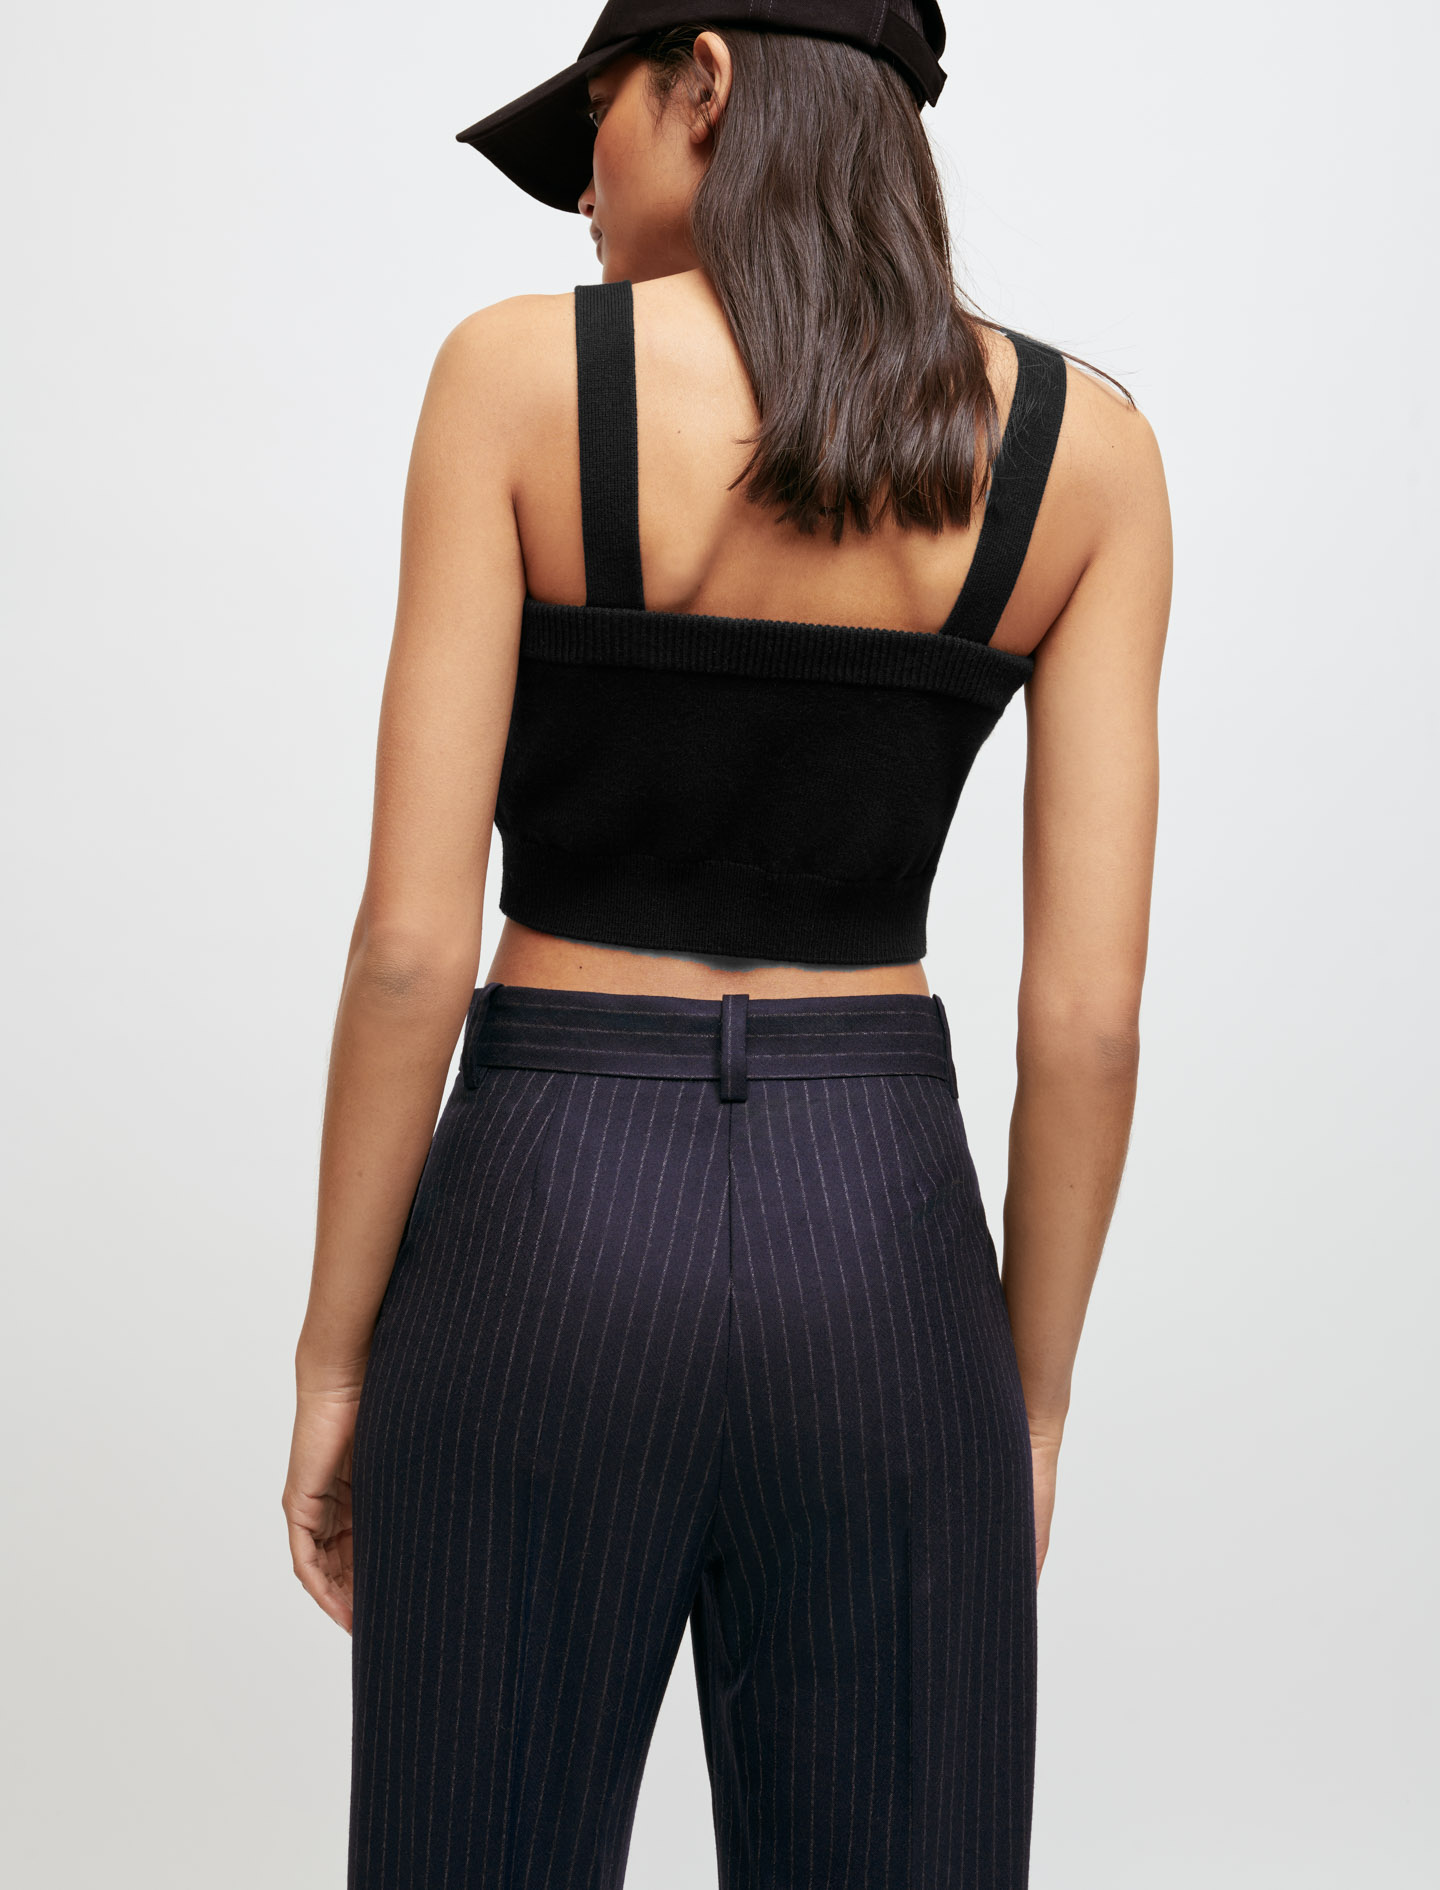 Knitted crop tops with straps - Black